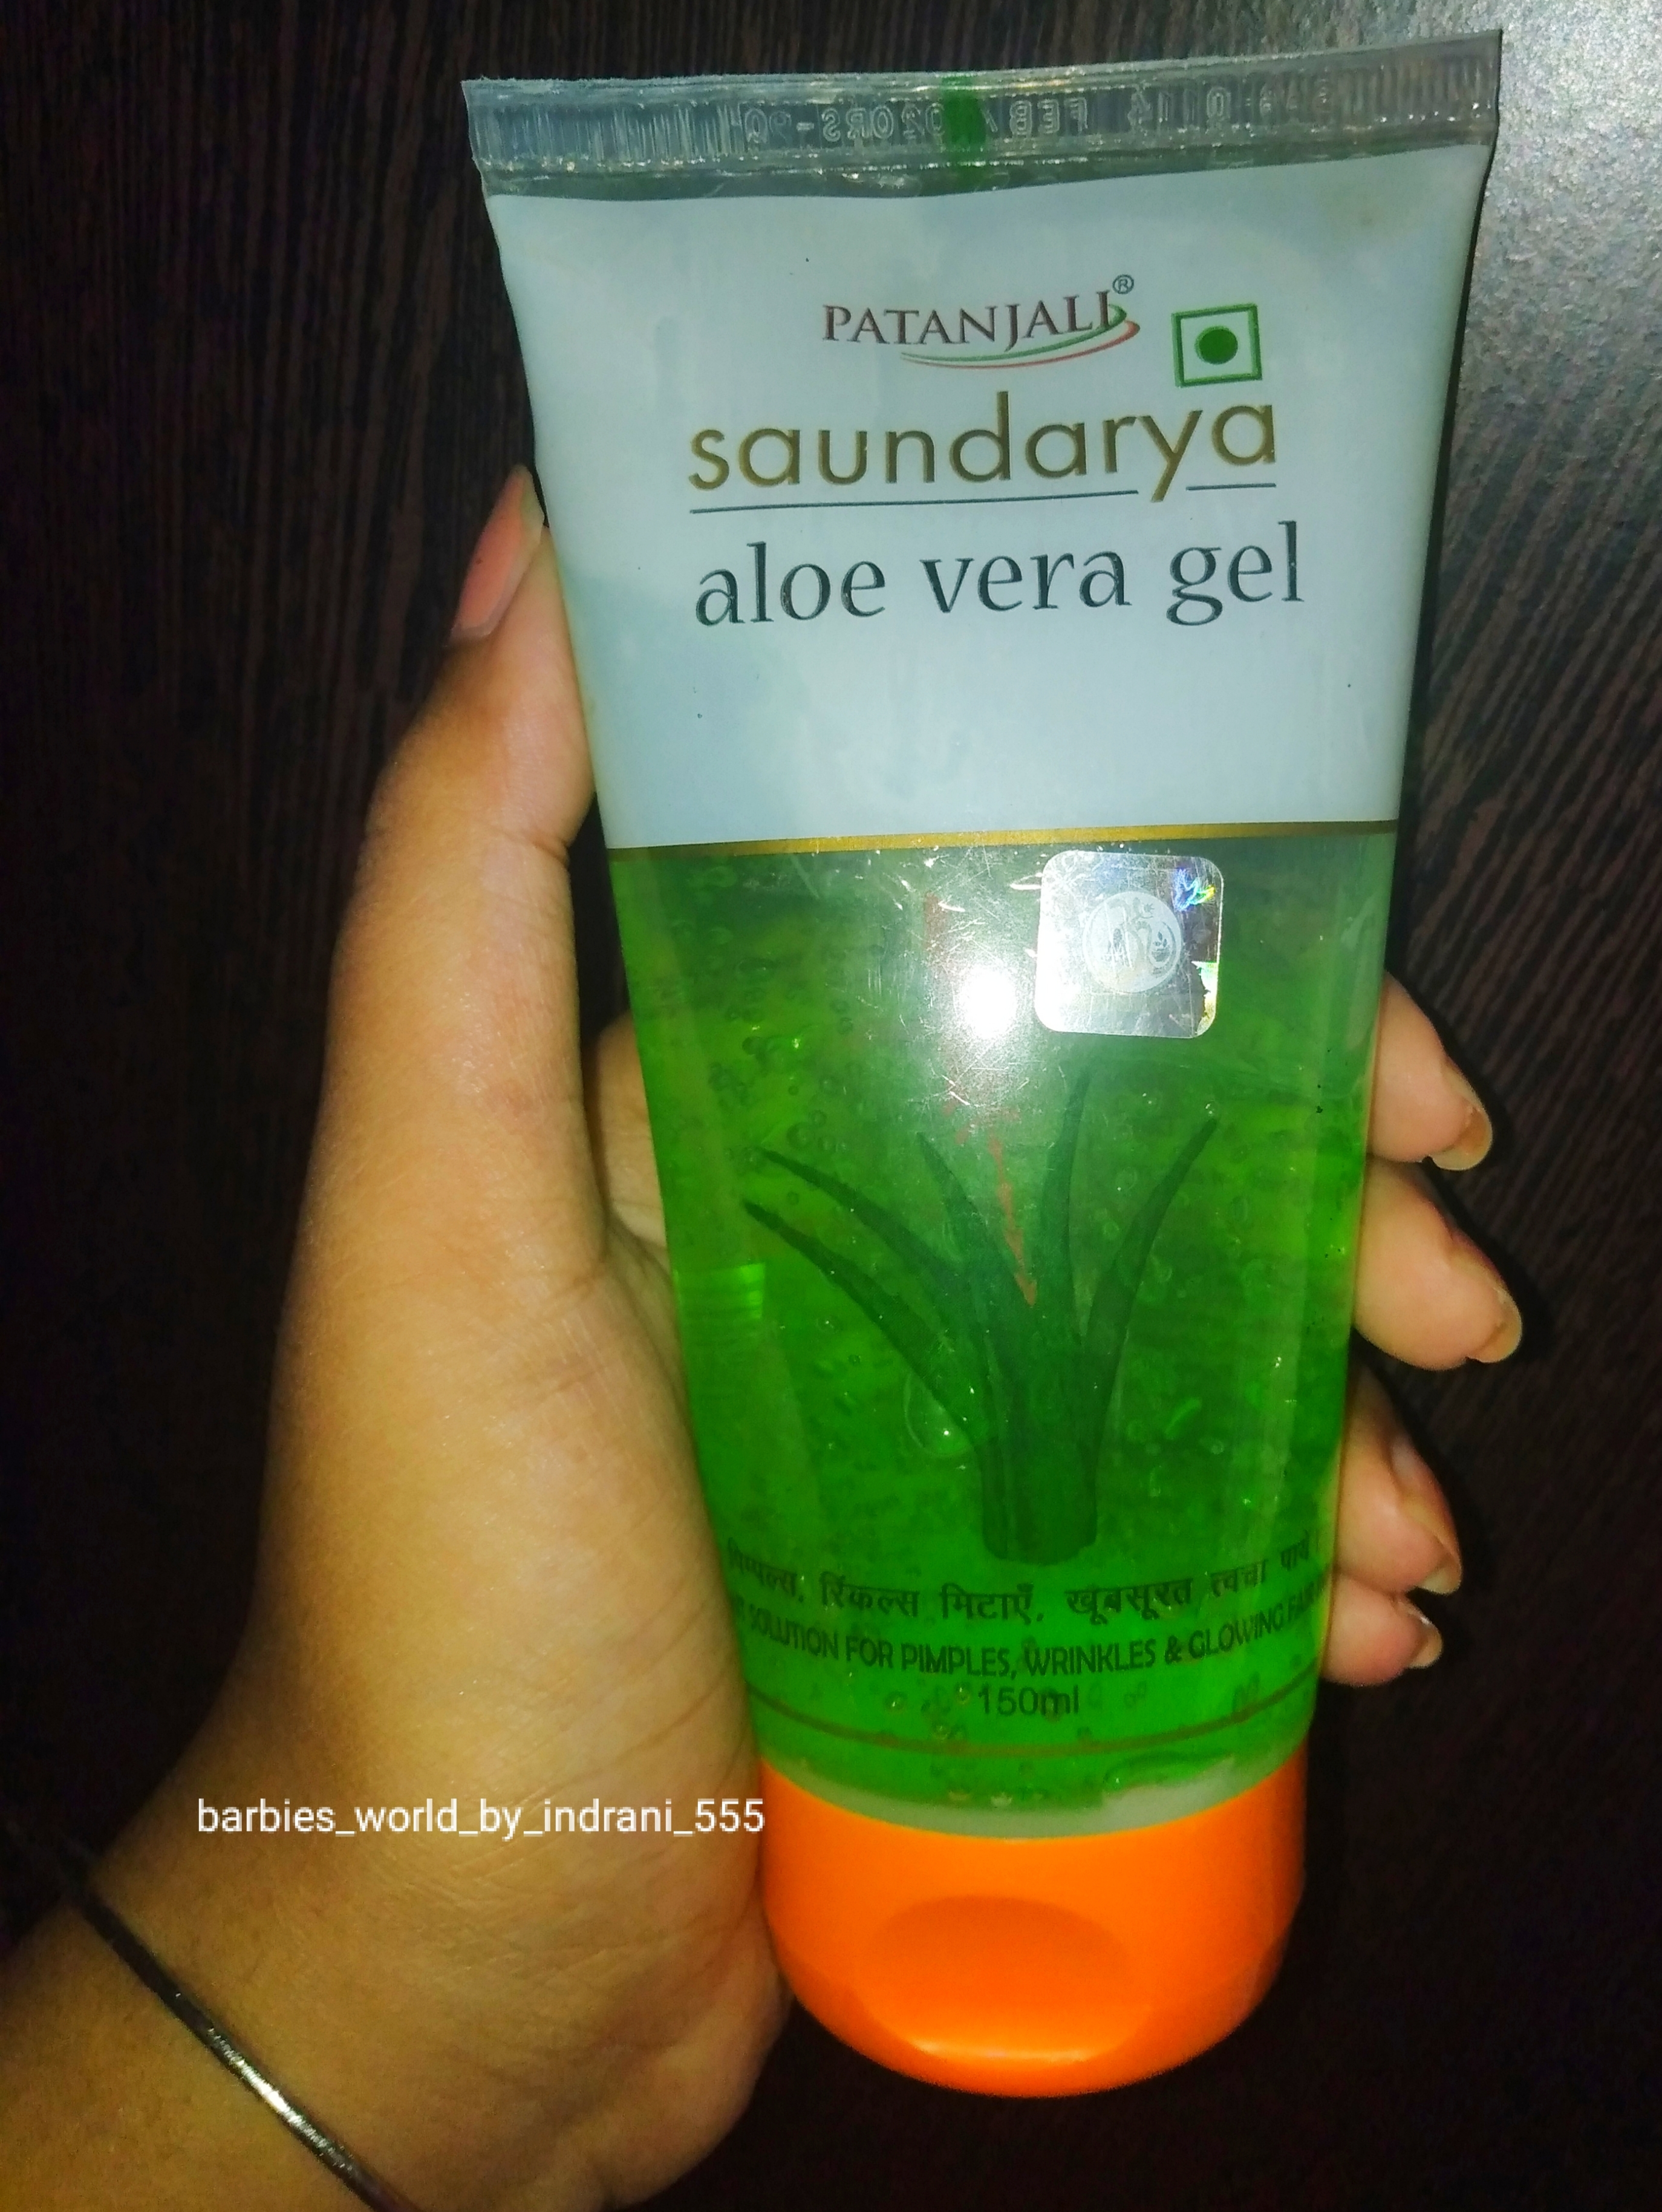 Patanjali Aloe Vera Gel-Affordable & High Quality Aloe Vera Gel-By indranireviews